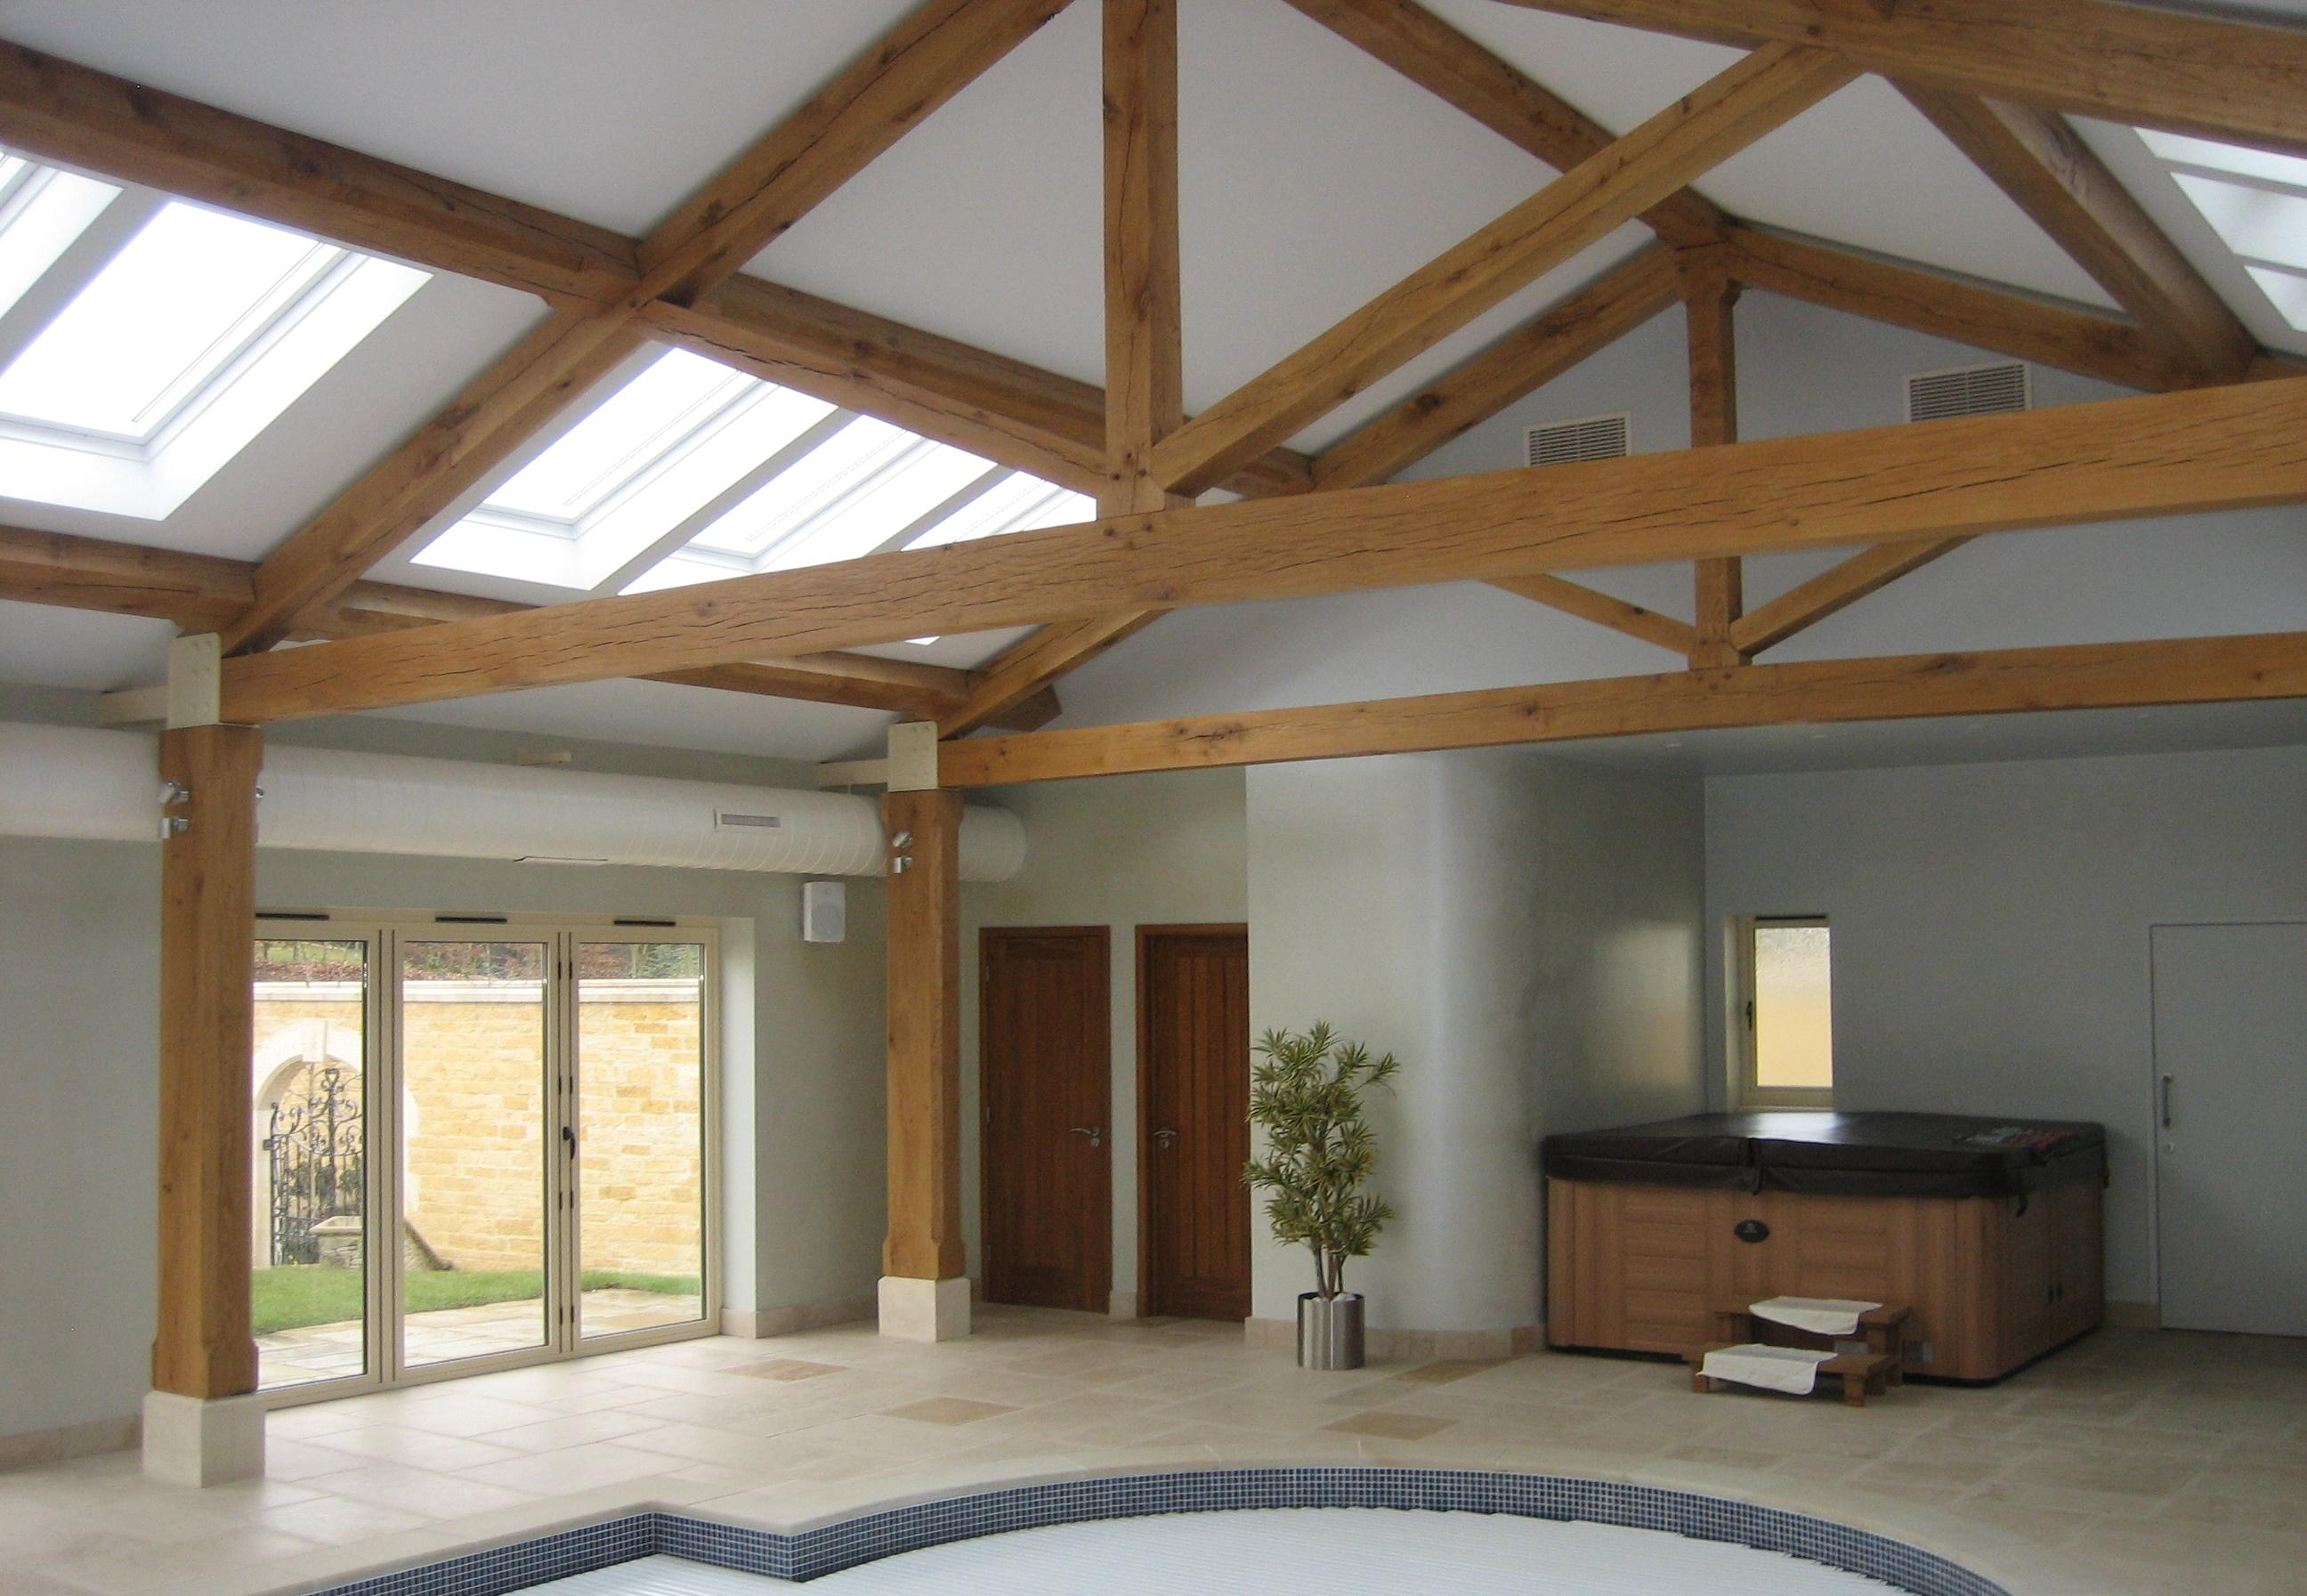 Oak king post trusses over swimming pool